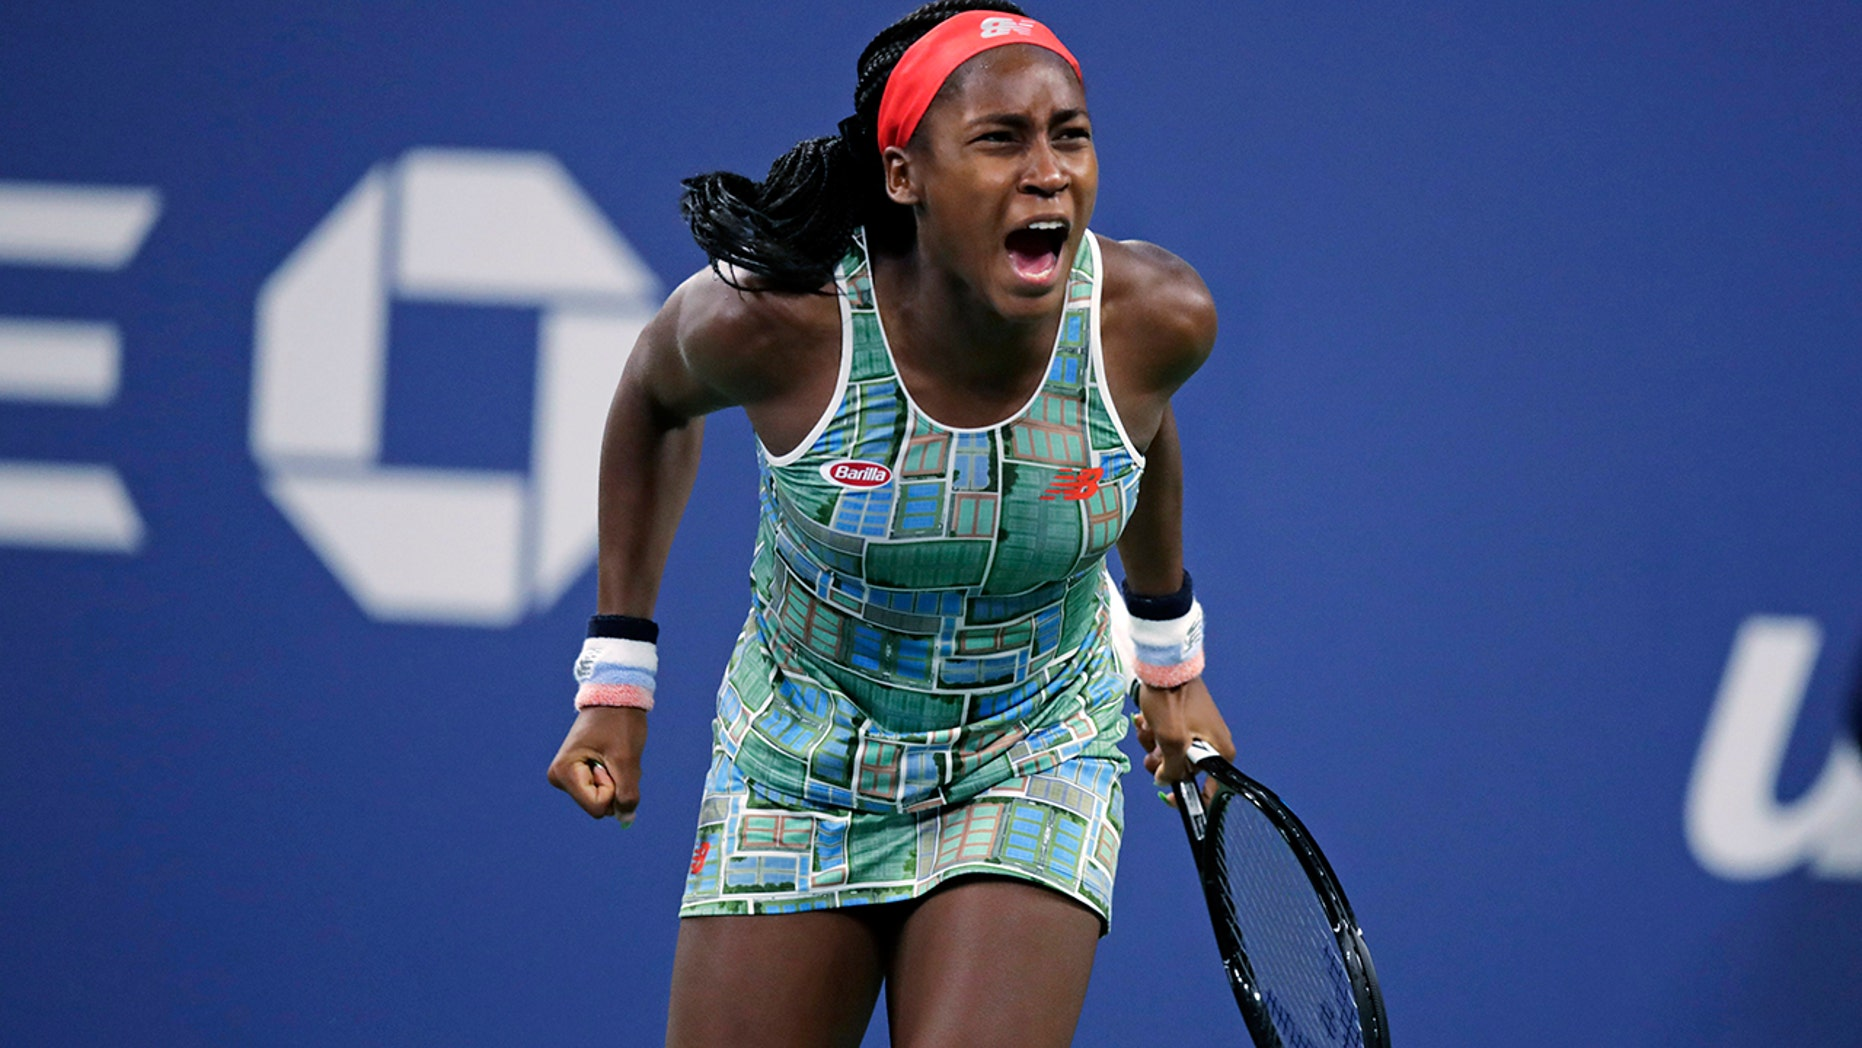 'Amazing' Osaka thrashes tearful Gauff at US Open as Nadal coasts